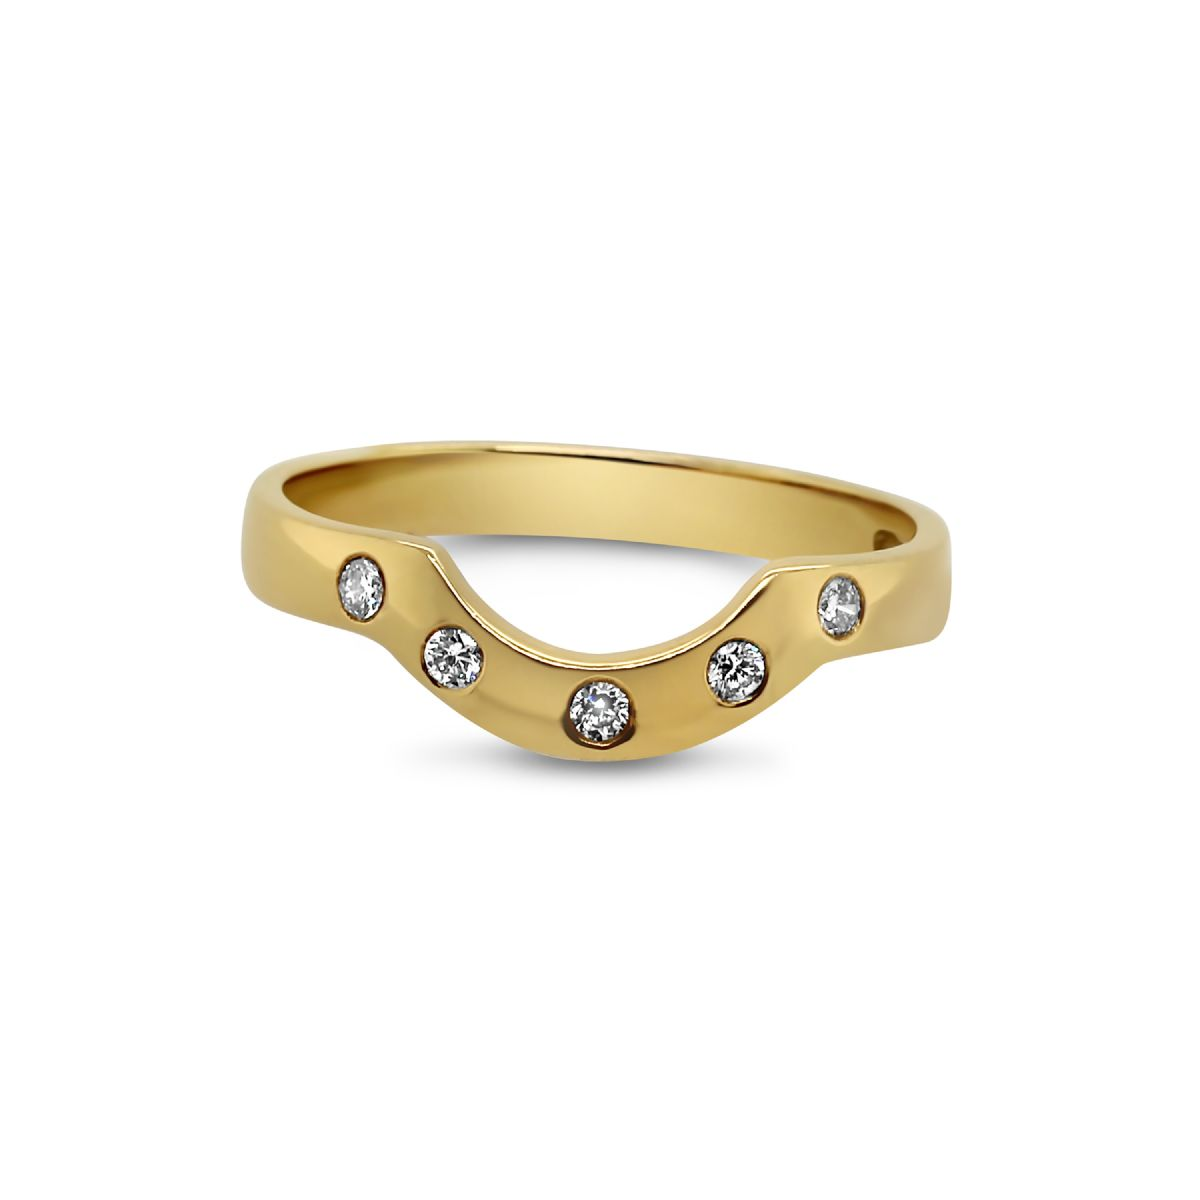 18k gold and diamond horseshoe ring -  Ring